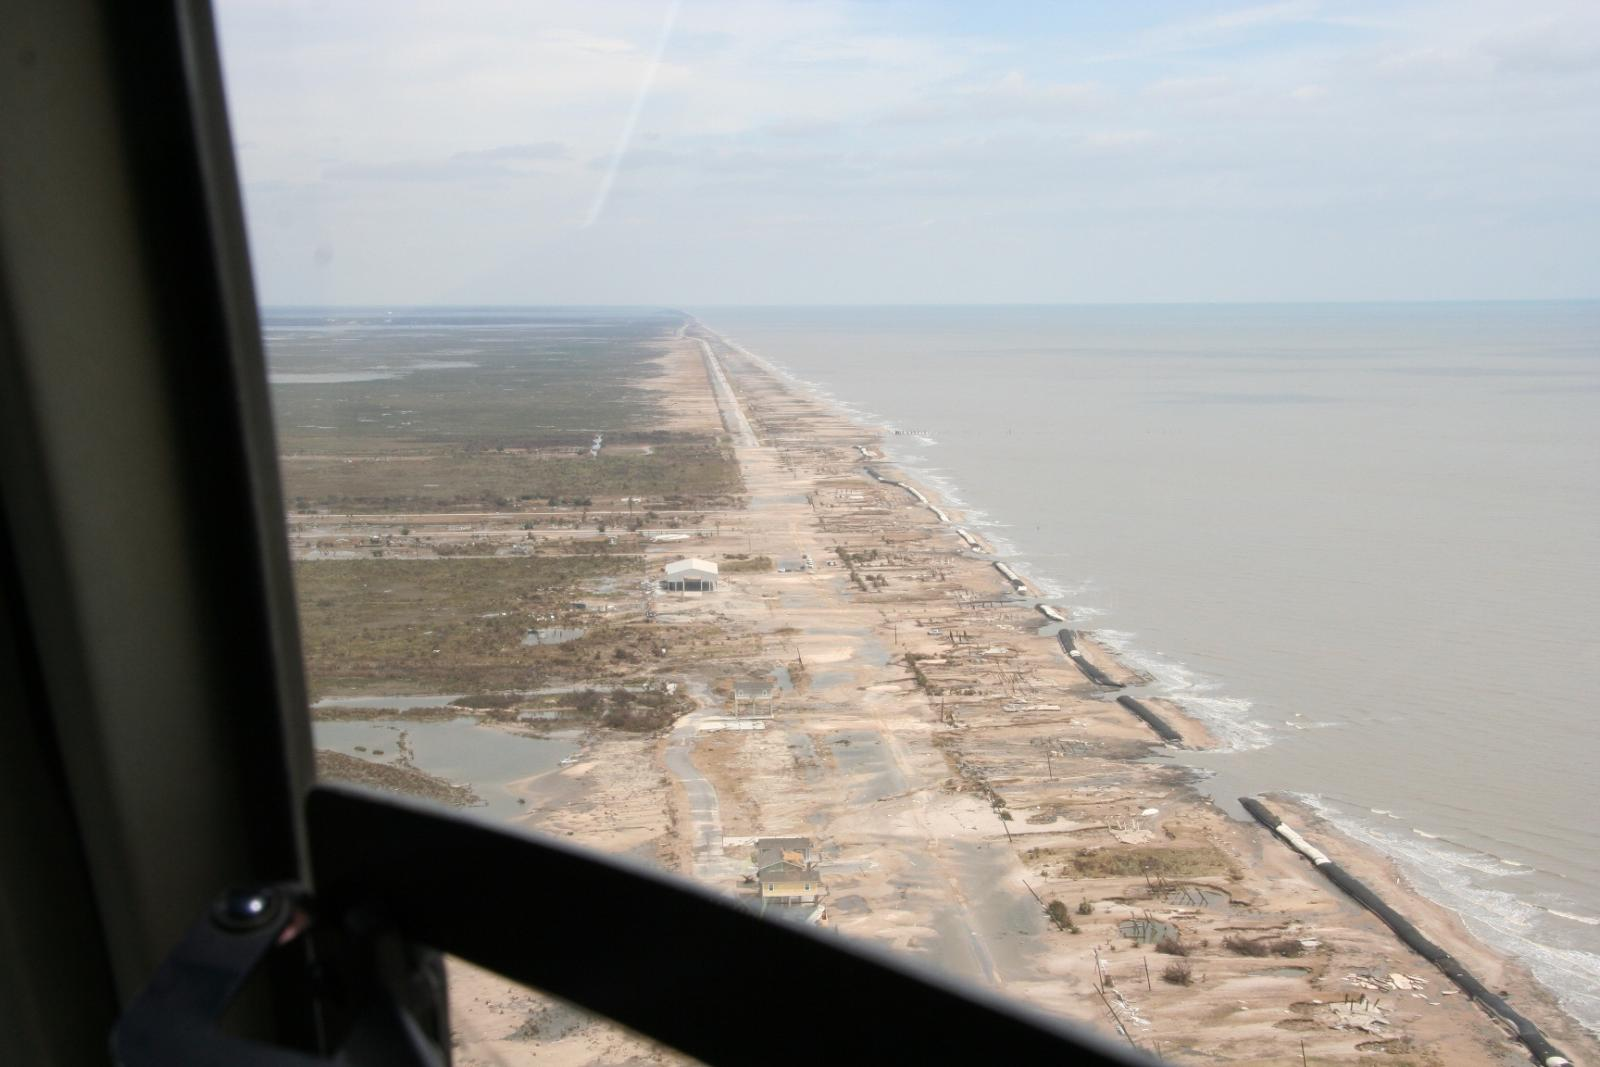 Bolivar Peninsula Damage